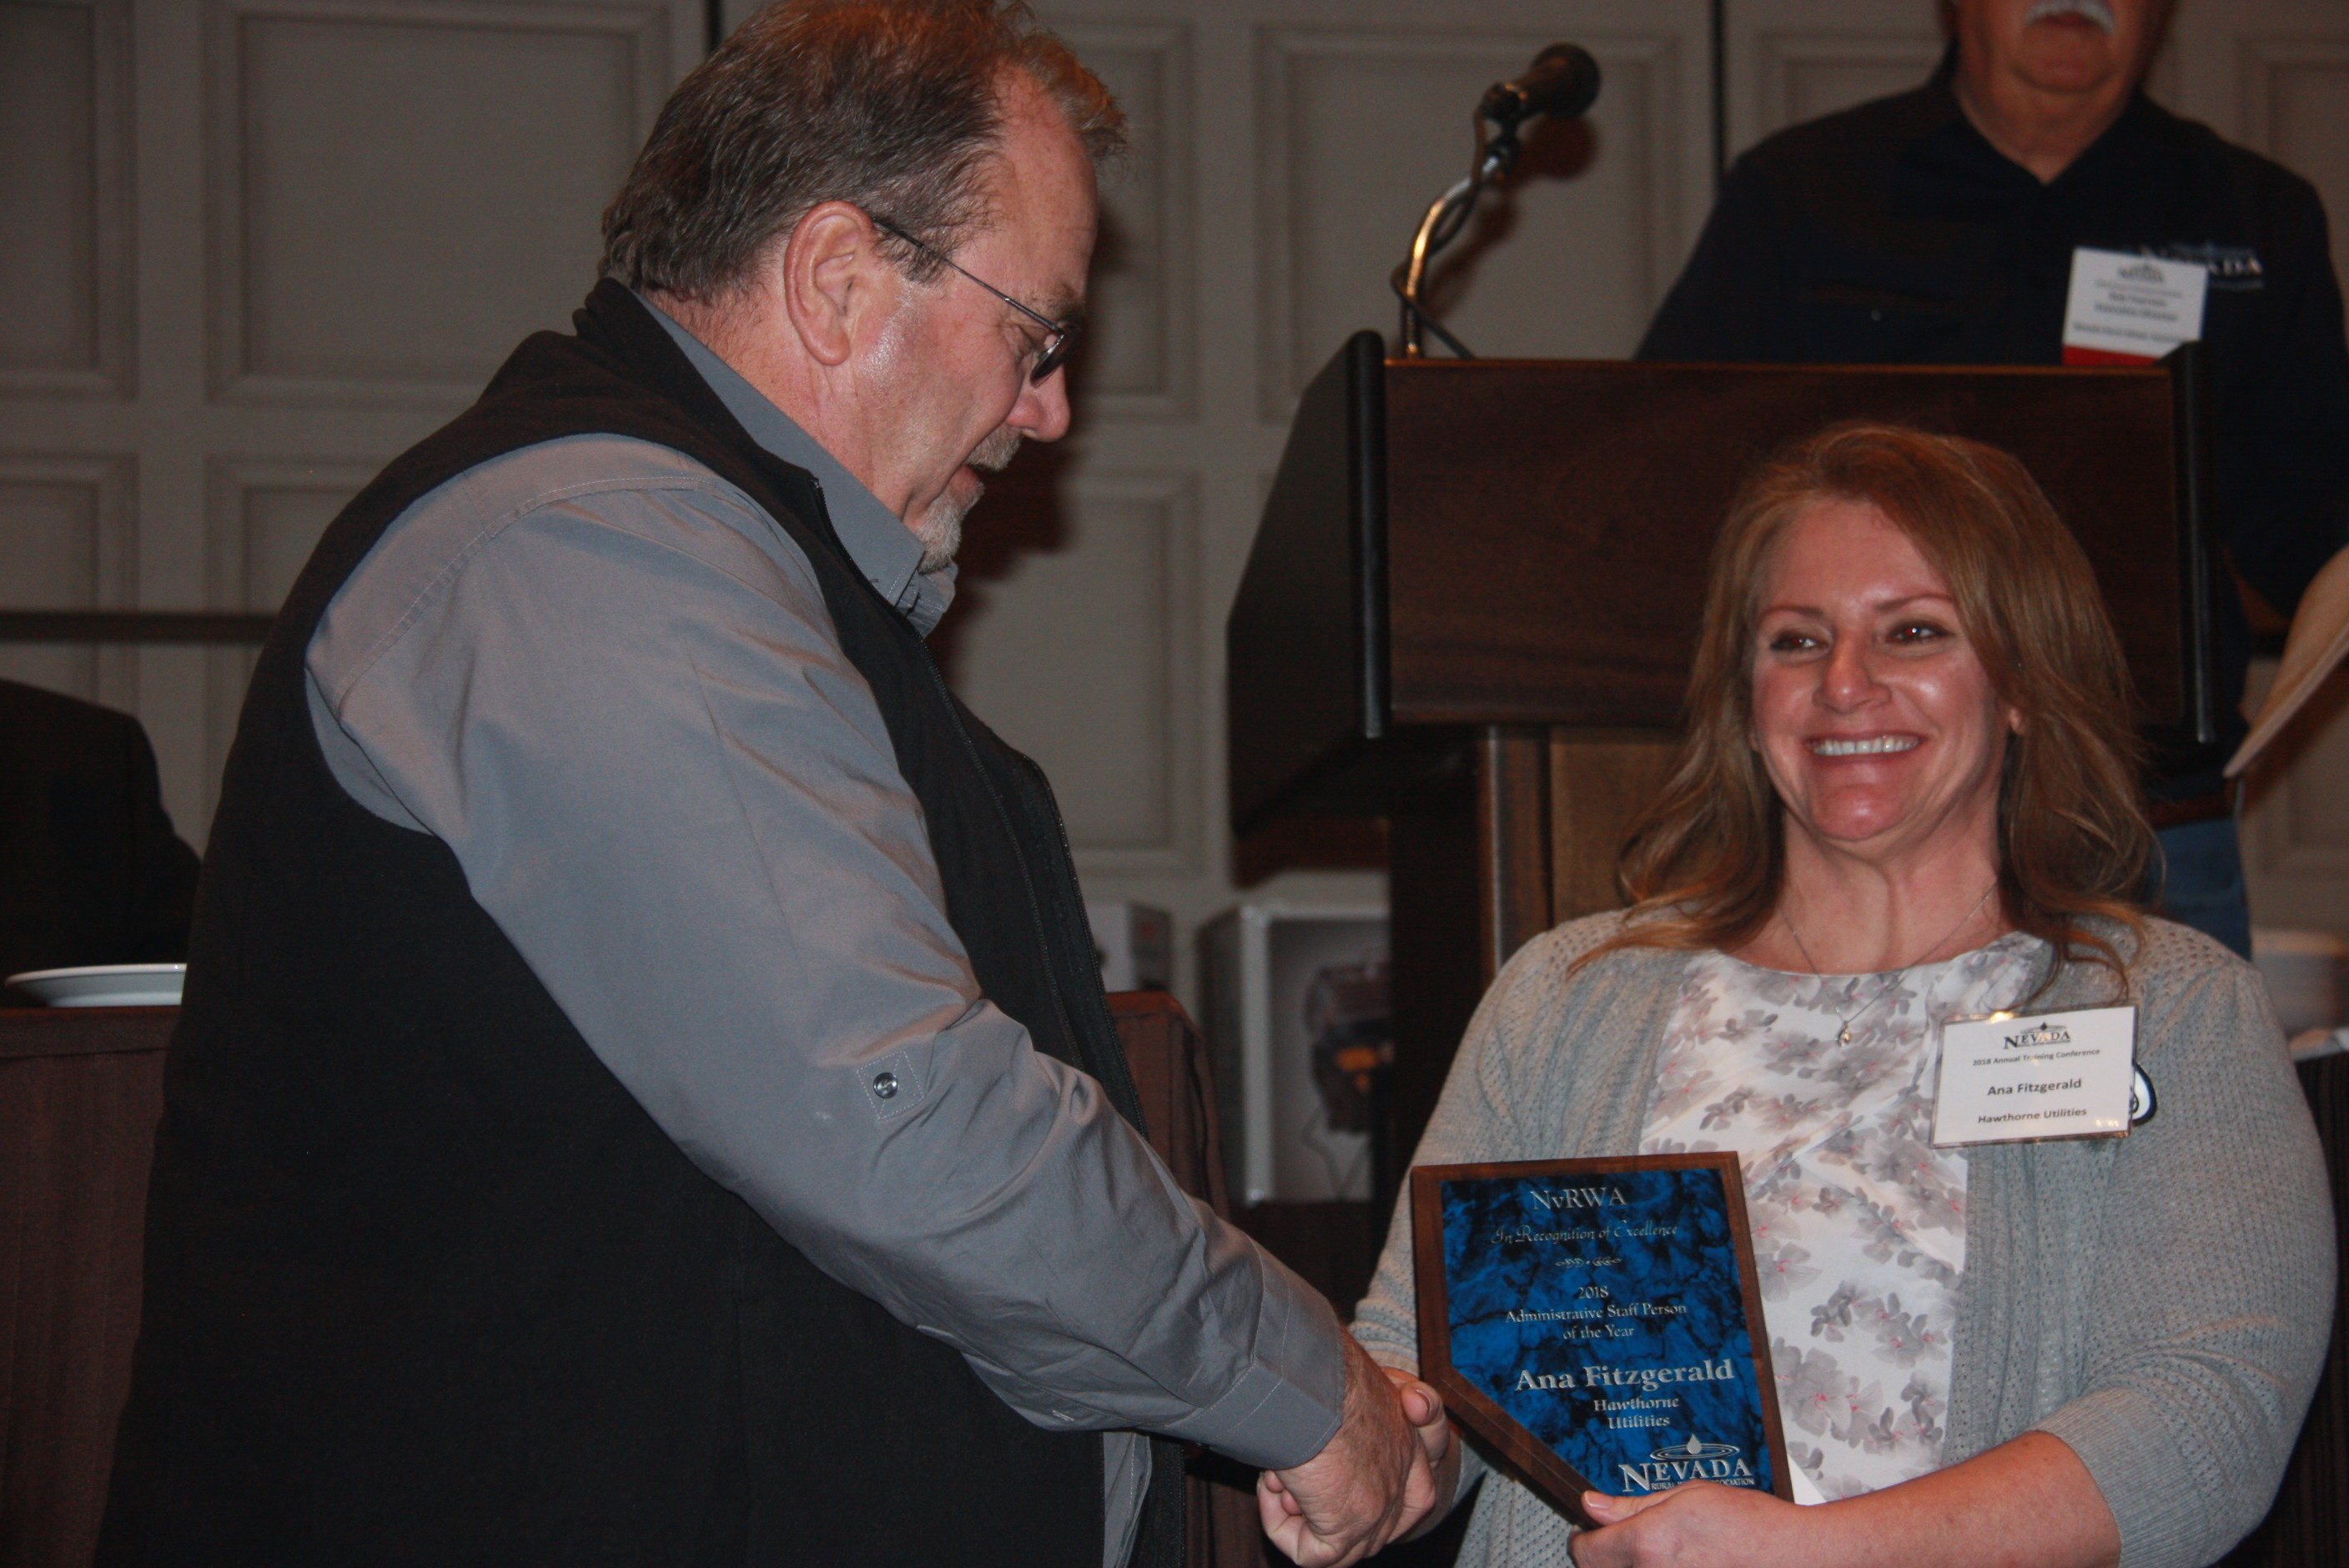 Ana-Fitzgerald-with-Hawthorne-Utilities-receiving-her-Administrative-Person-of-the-Year-Award-from-NvRWA-Board-President-Cameron-McKay-2